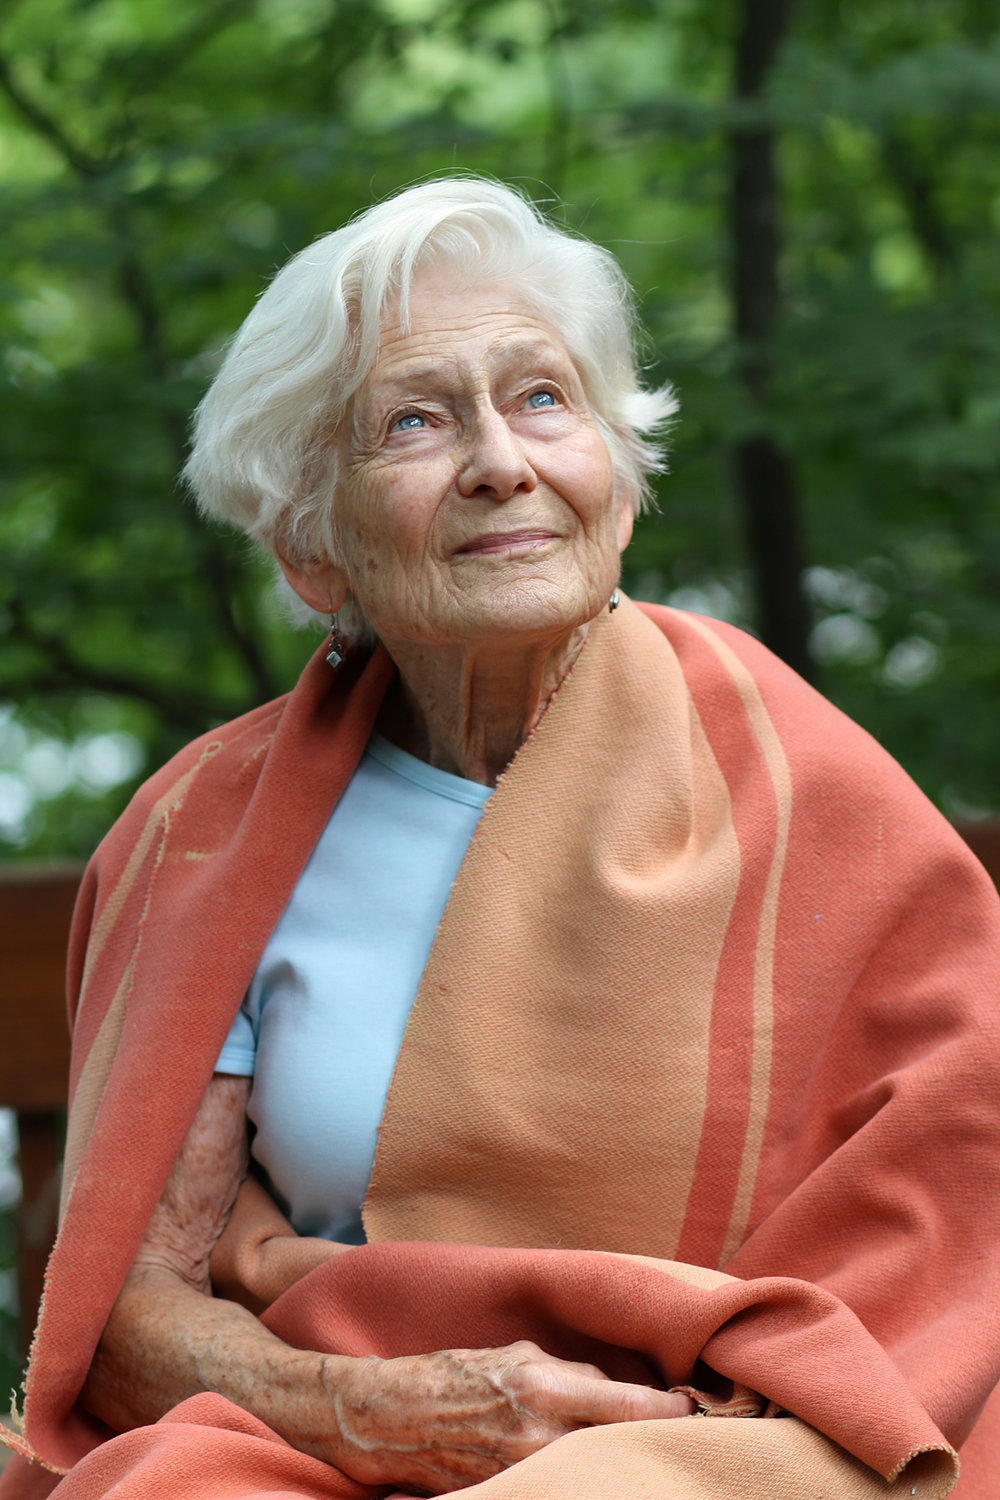 Irene in 2013 with her childhood blanket, the same one she had through Westerbork, Bergen-Belsen, and Camp Jeanne d'Arc in Algeria.